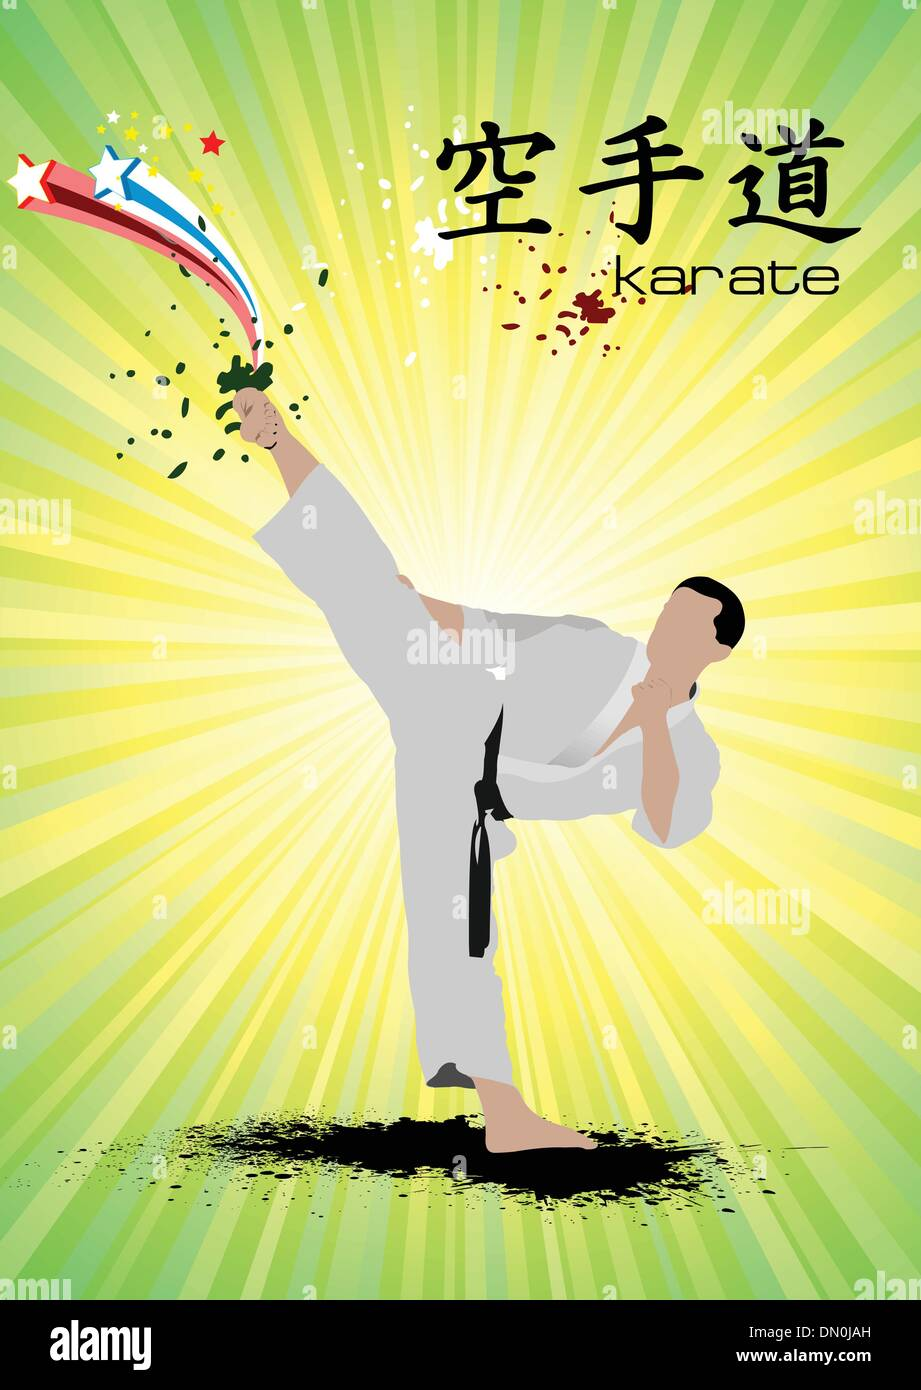 Sports de combat orientaux. Affiche de karaté. Vector illustration Photo Stock